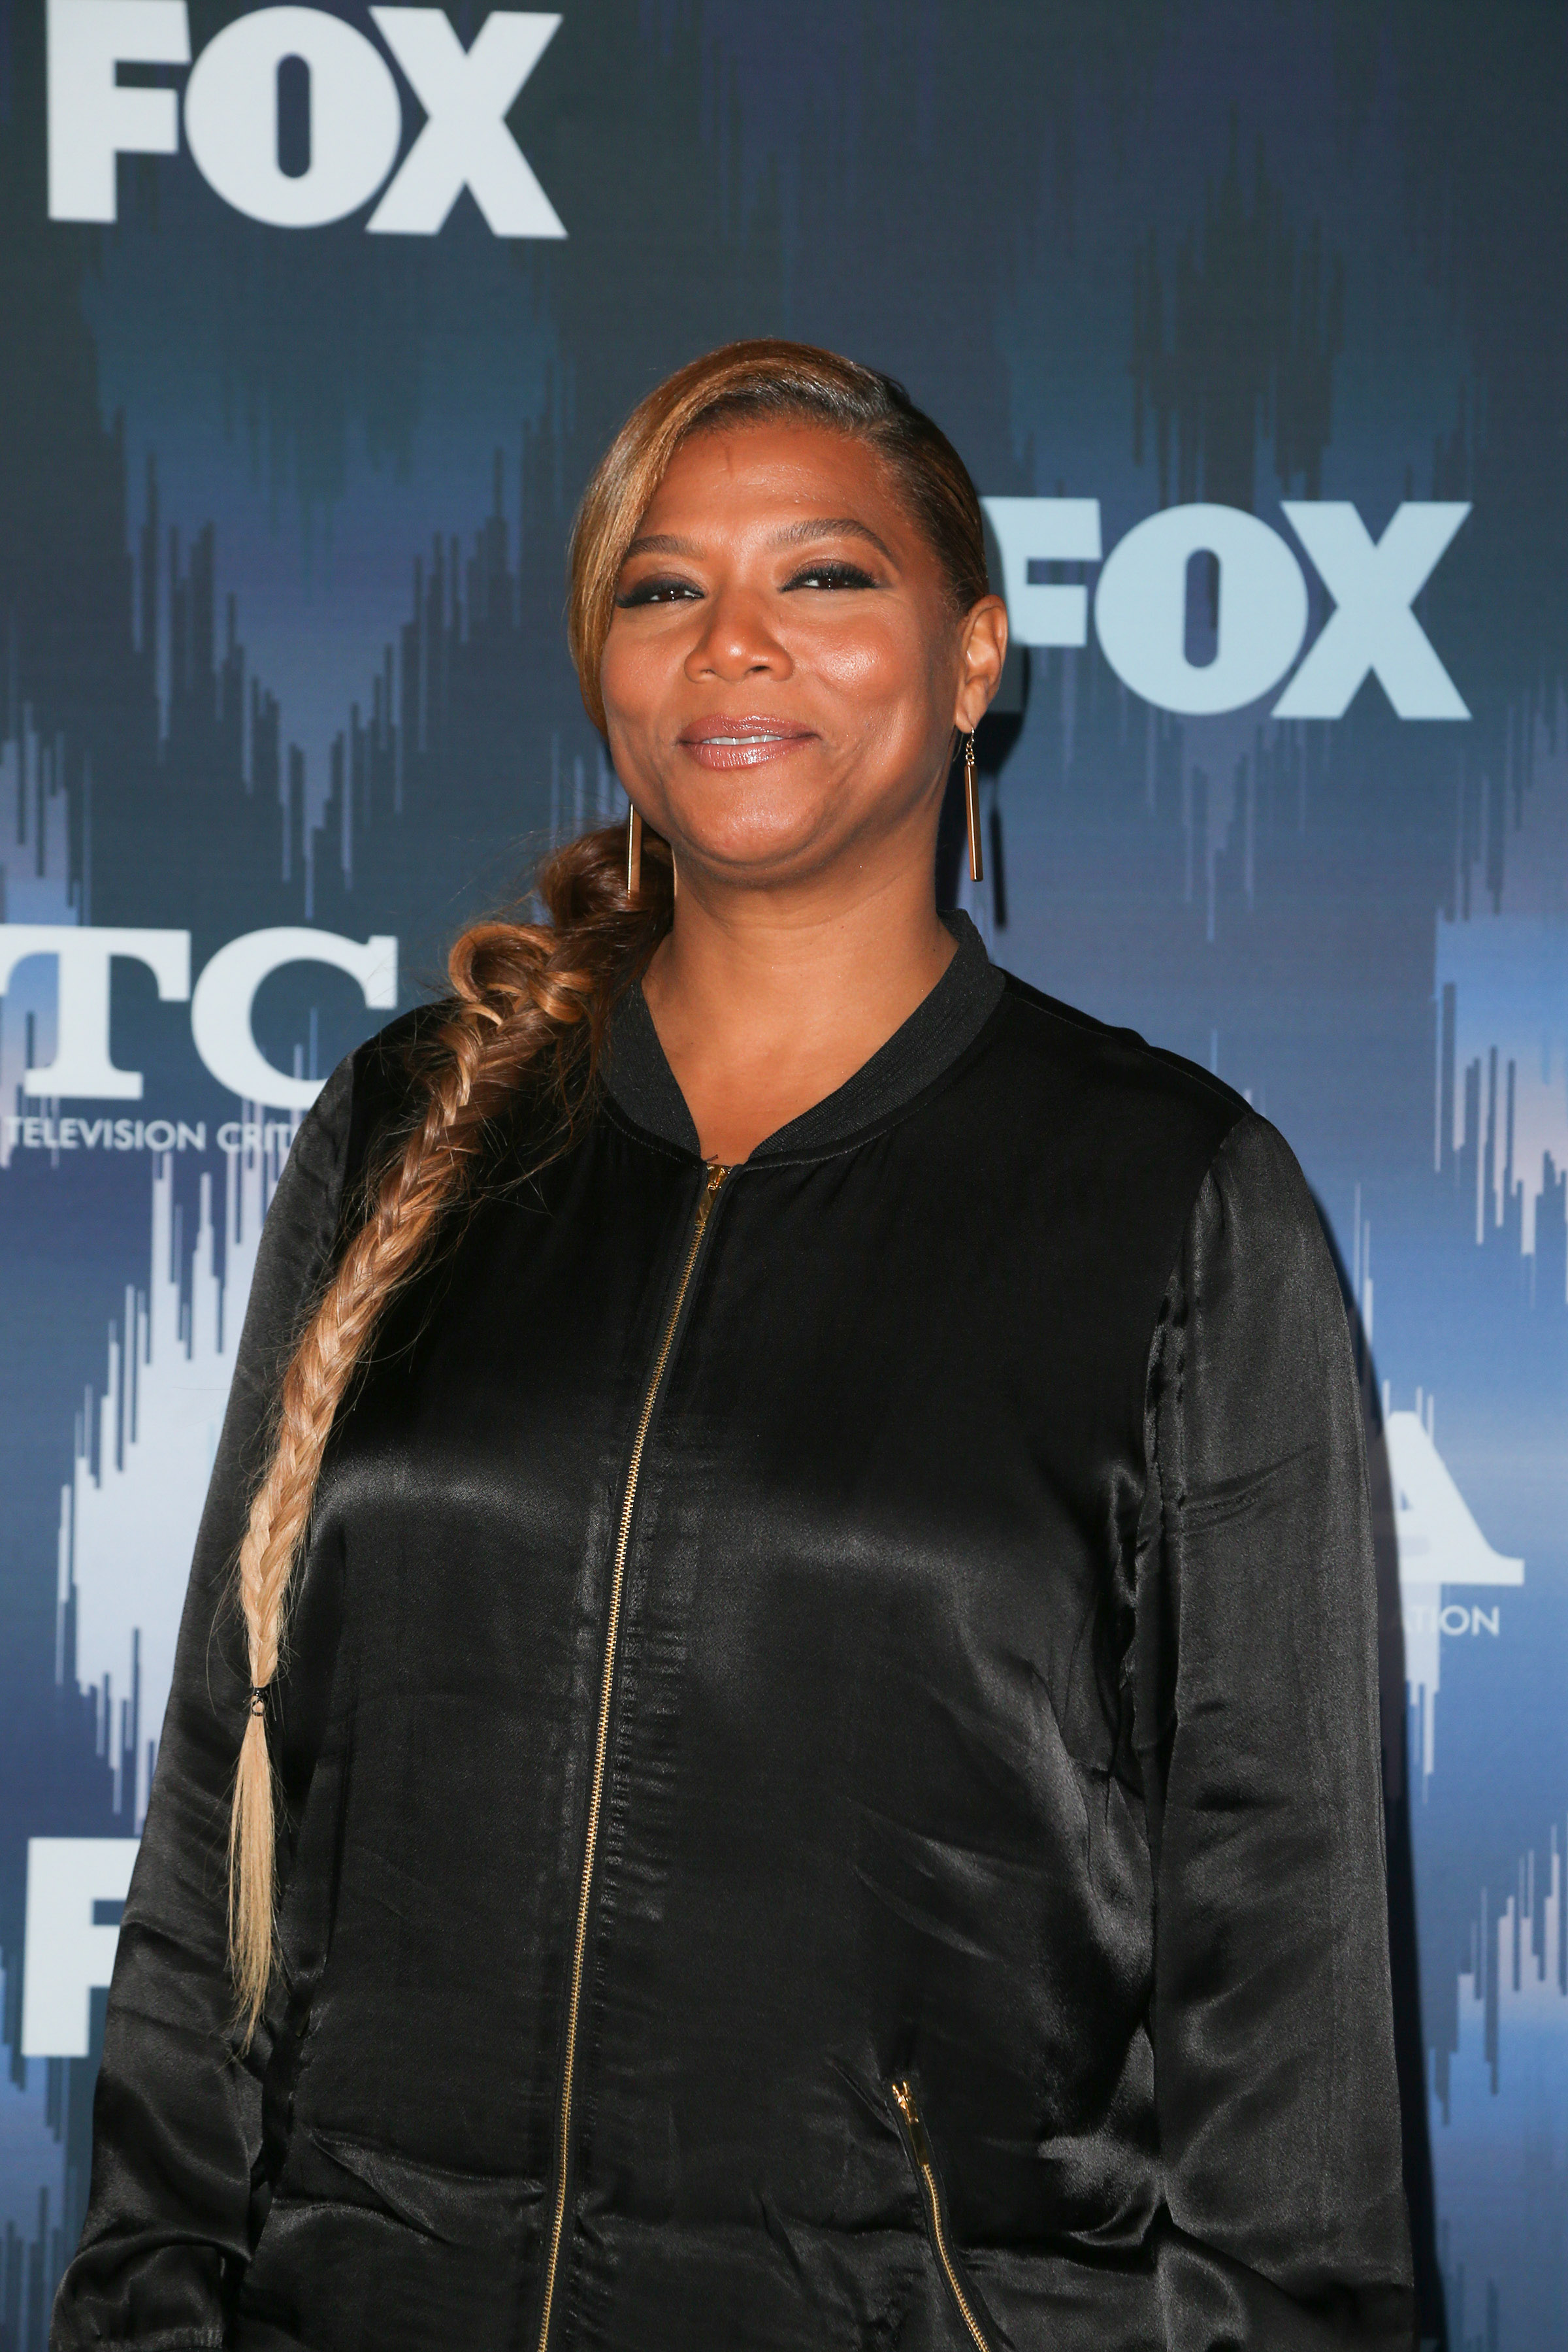 01/11/2017 - Queen Latifah - 2017 Winter TCA Tour - Fox All-Star Party - Arrivals - Langham Hotel - Pasadena, CA, USA - Keywords: Vertical, Radio, Theatrical Performance, California, Television Show, Arrival, Portrait, Photography, Arts Culture and Entertainment, Celebrities, Celebrity, Person, People, Publicity Event, Topix, Bestof Orientation: Portrait Face Count: 1 - False - Photo Credit: PRPhotos.com - Contact (1-866-551-7827) - Portrait Face Count: 1